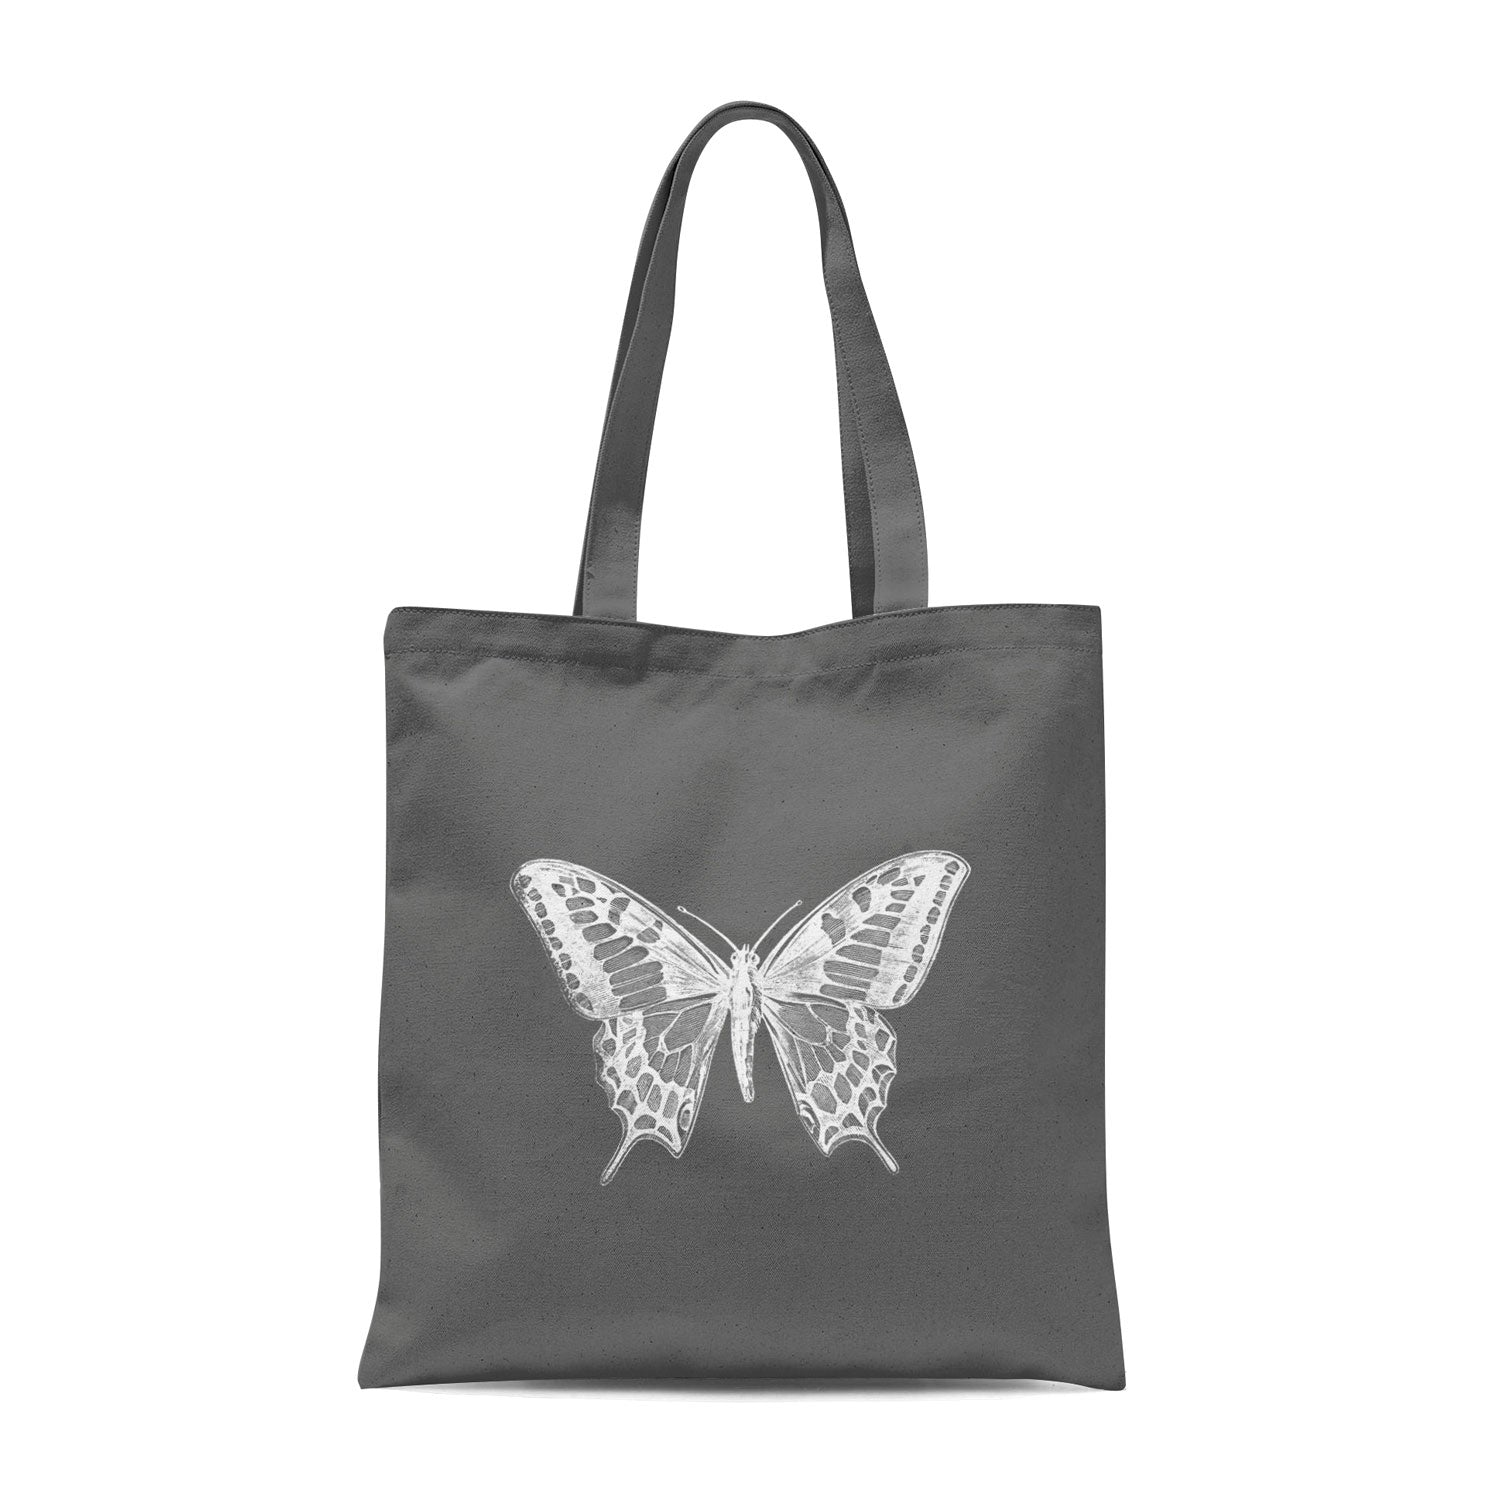 grey tote bag with white butterfly design